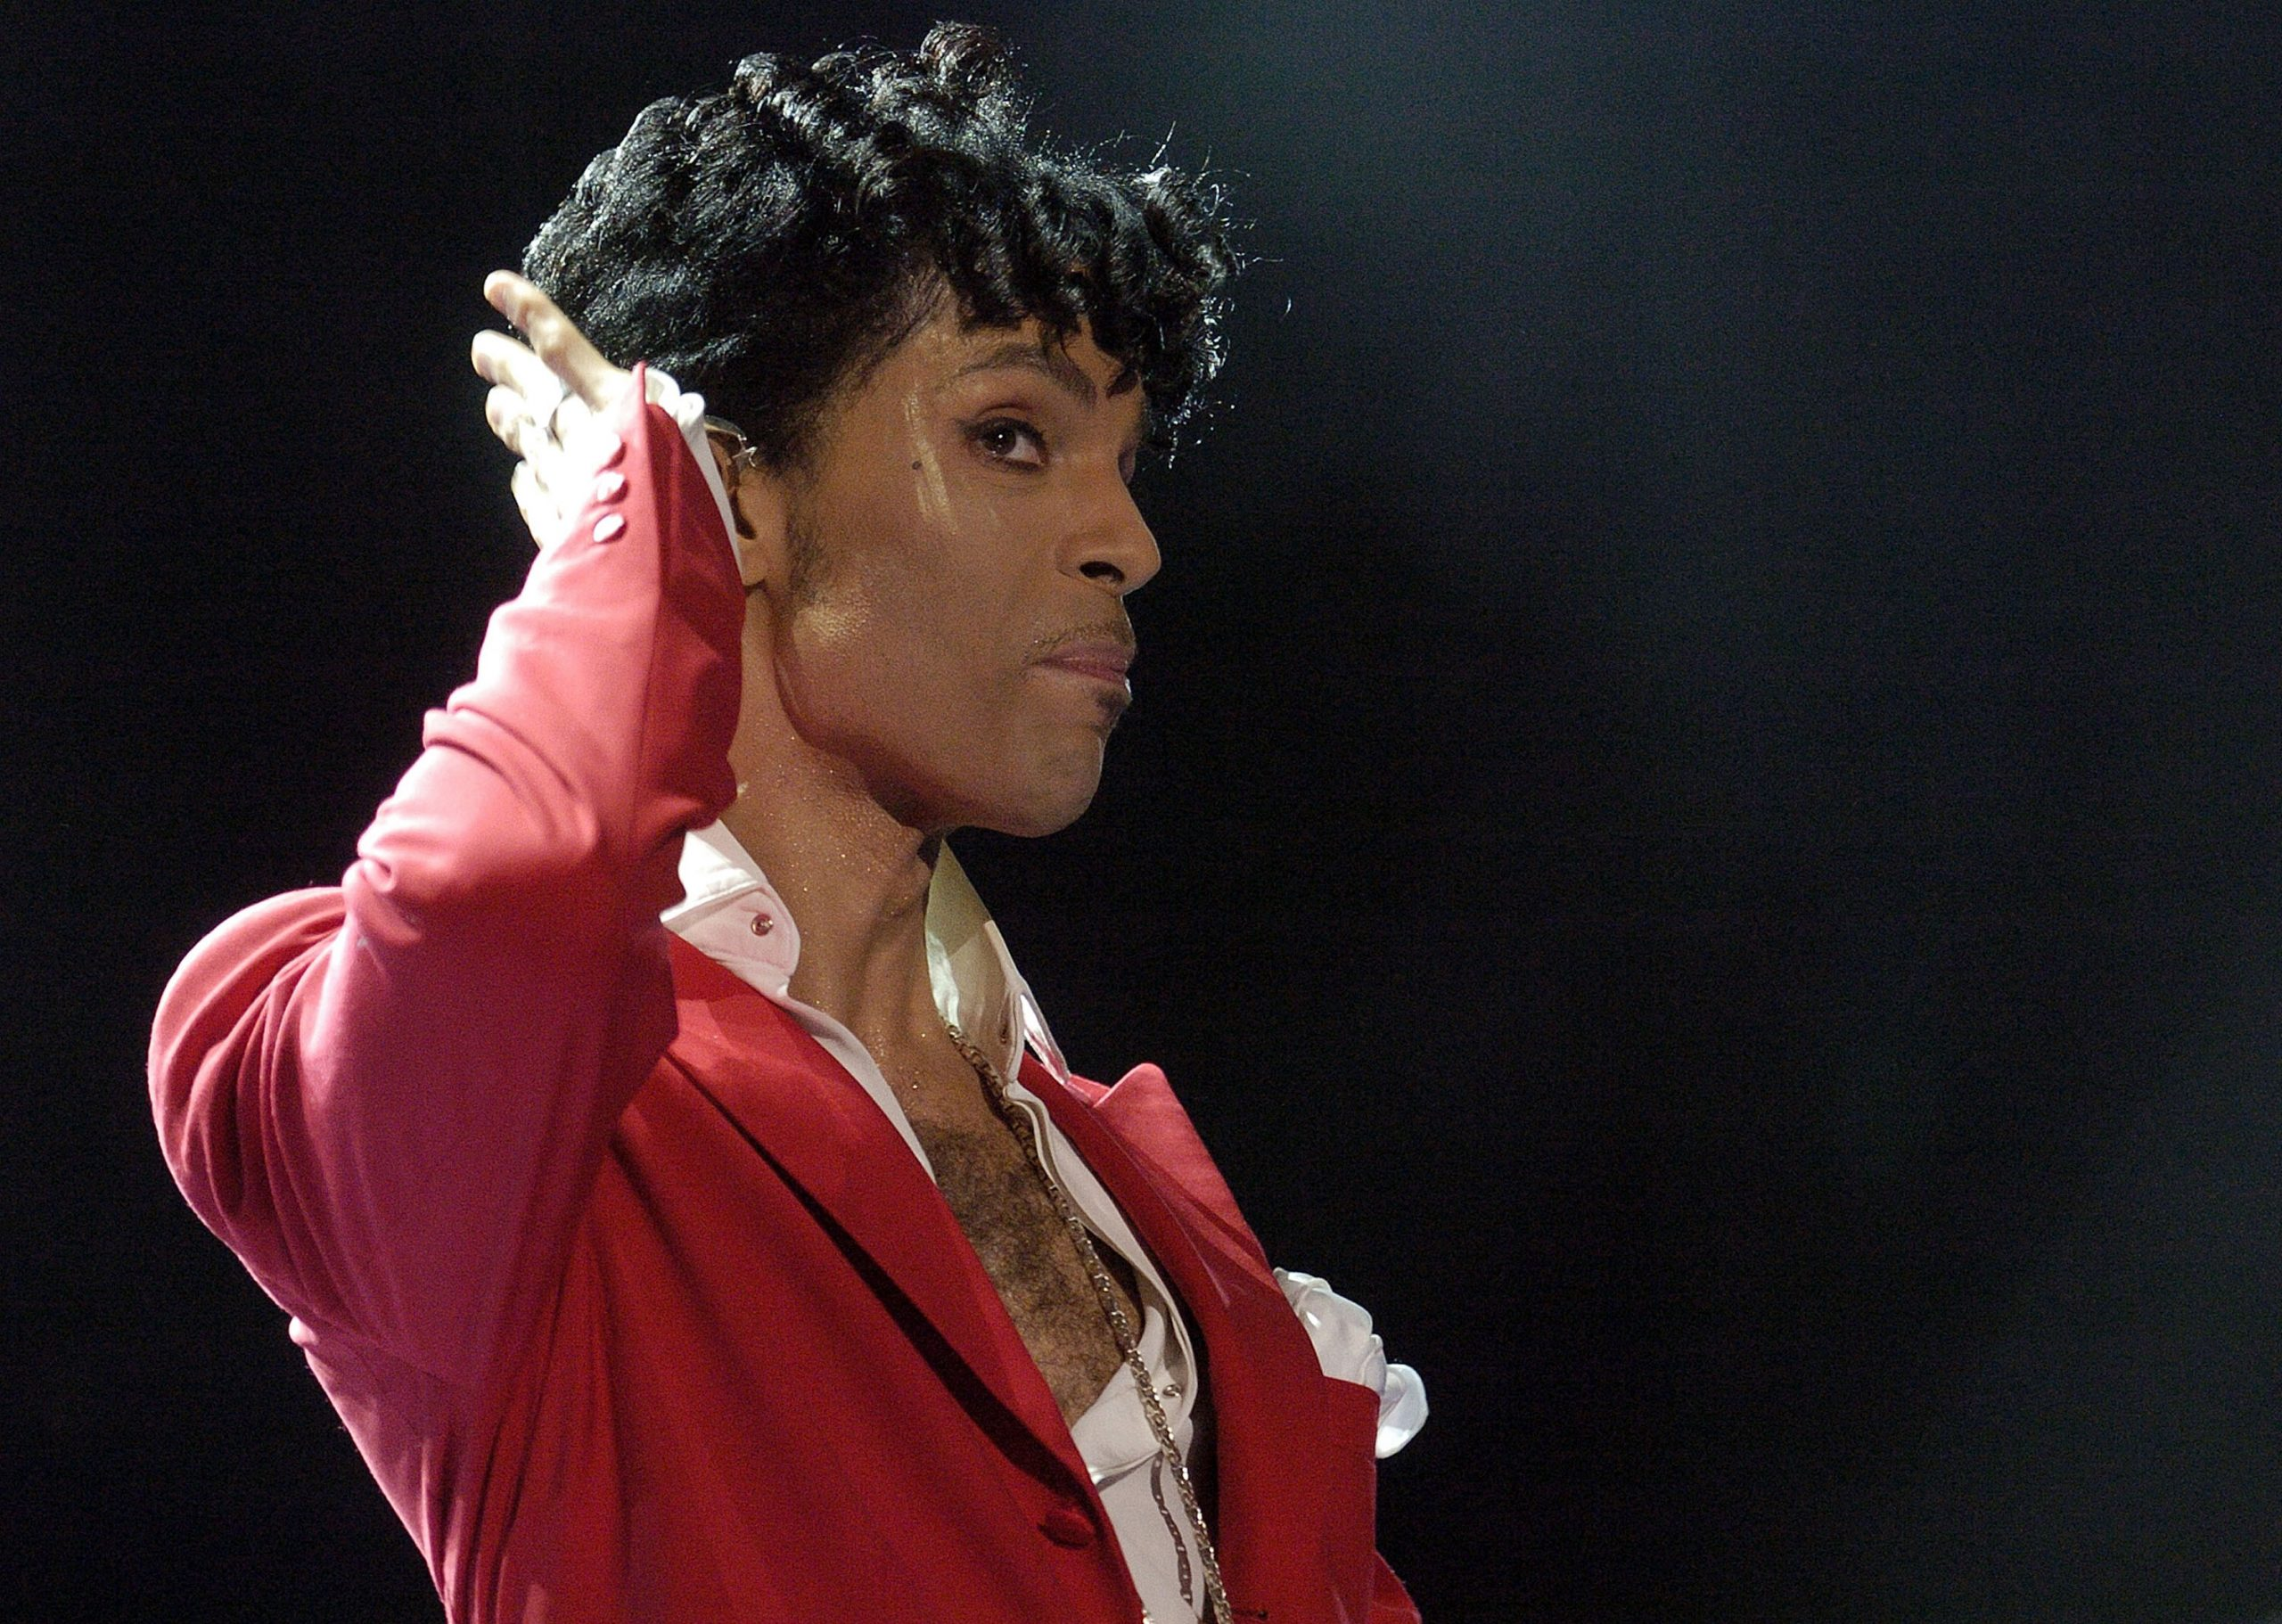 gettyimages 51020844 scaled 20 Things You Never Knew About Prince